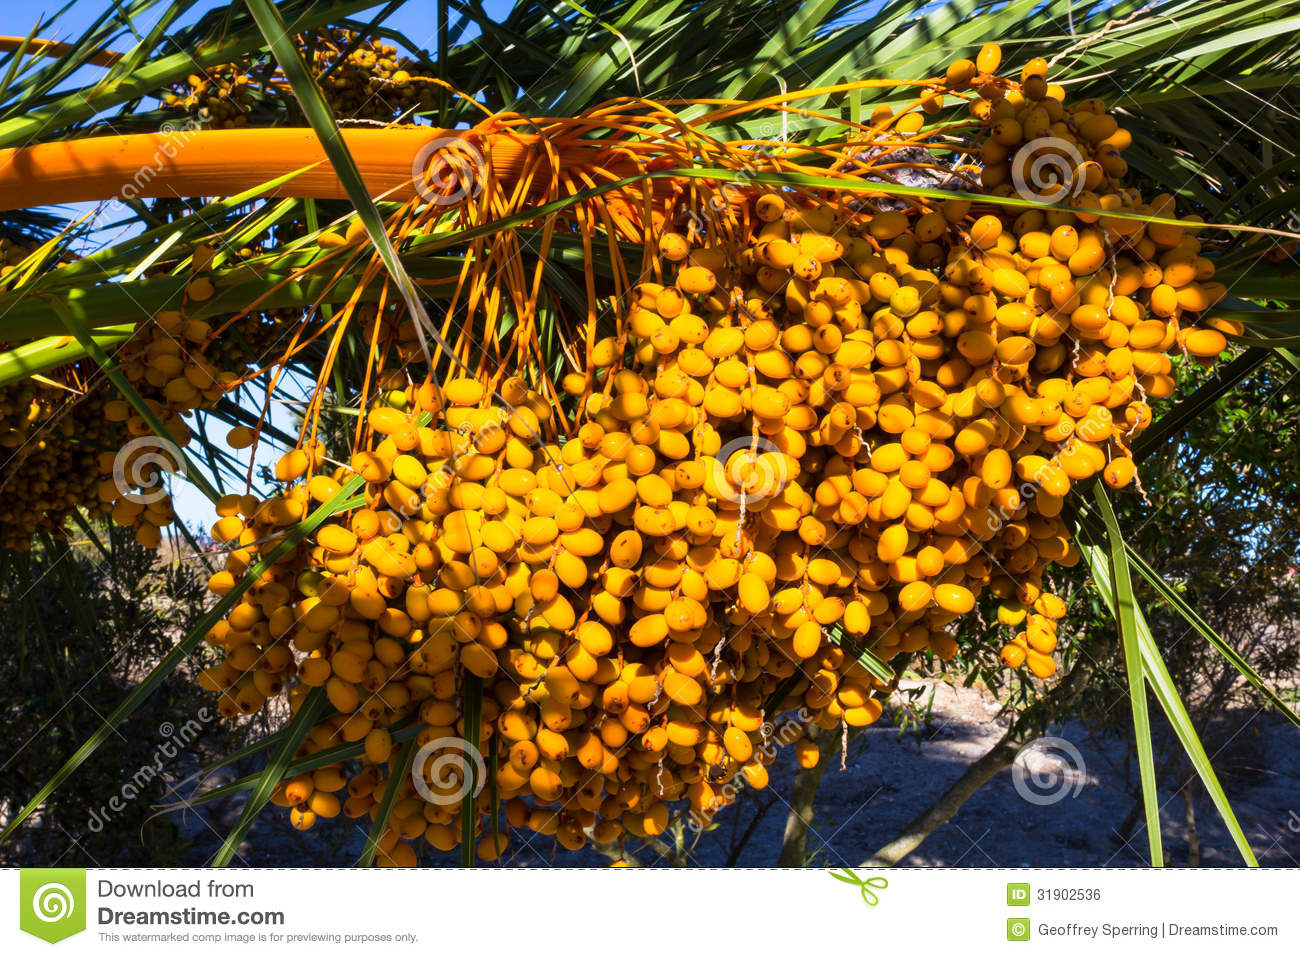 large bunch of yellow palm date fruits on palm tree stock photo